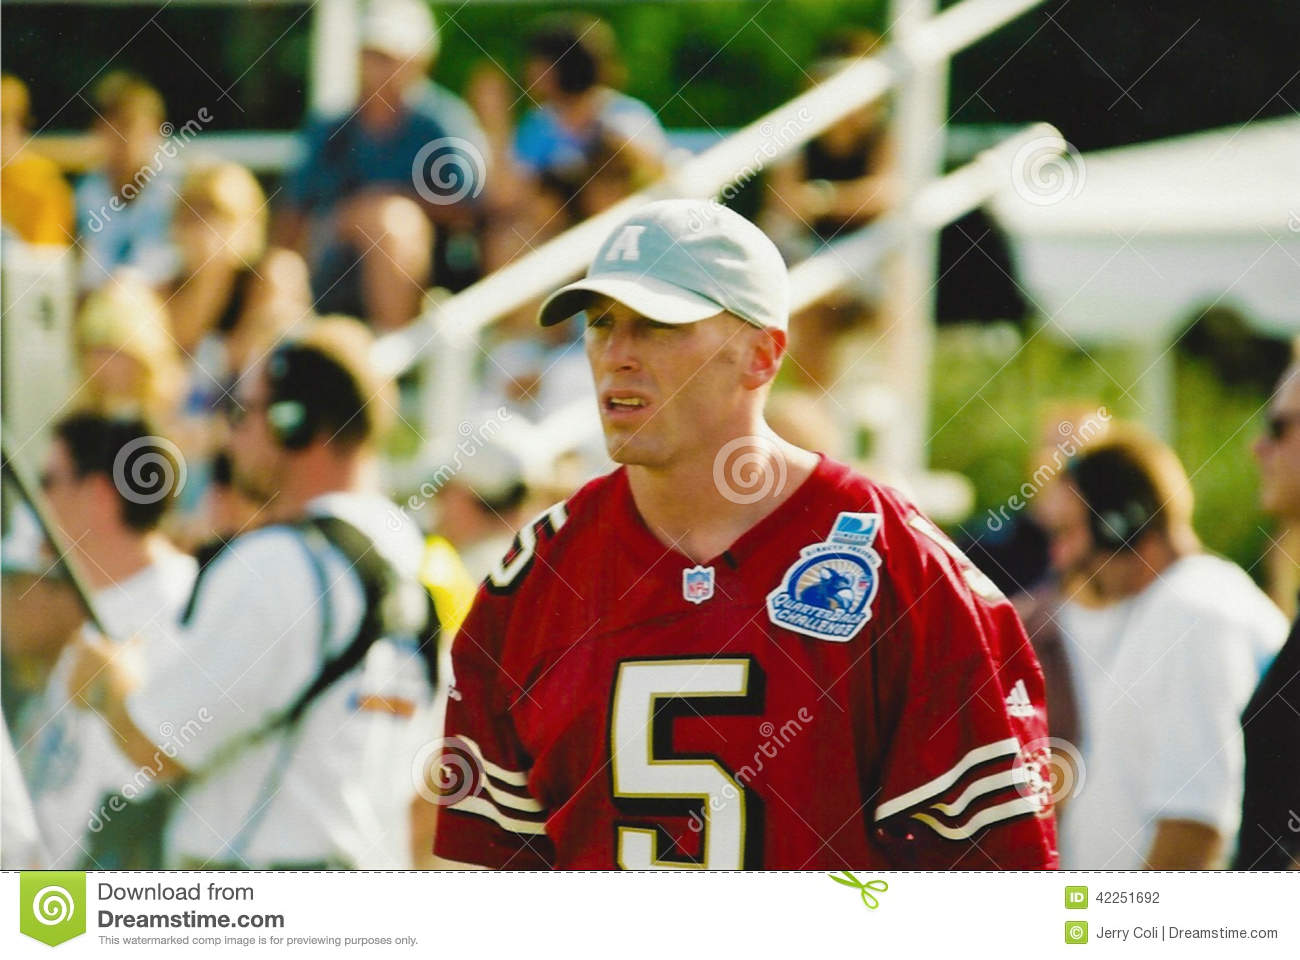 In the zone tv covers jeff garcia's pass it on foundation event